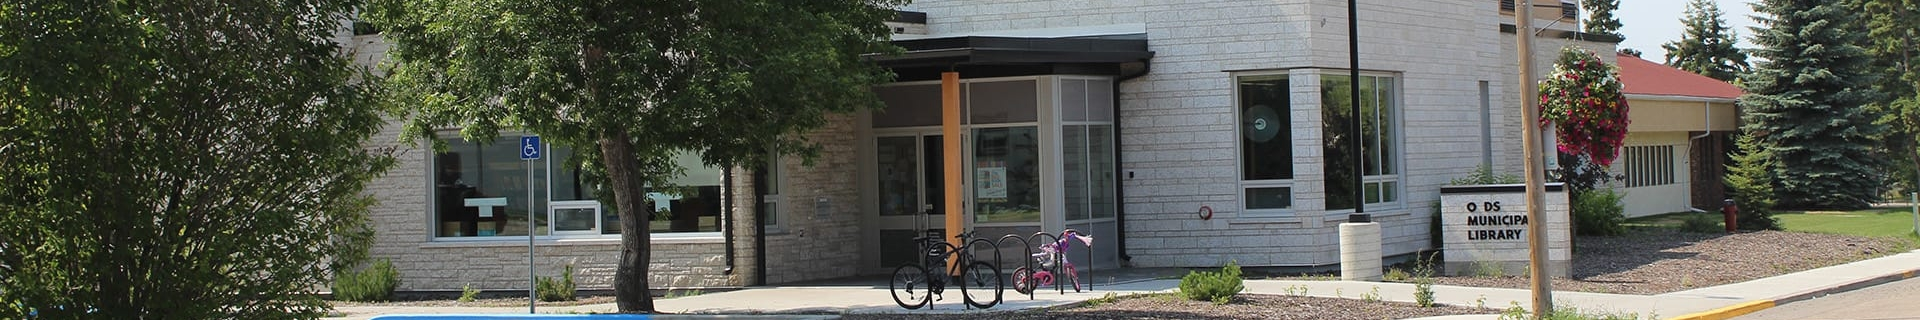 "Brick building with bicycles parked in front and a sign that reads ""Olds Municipal Library"""